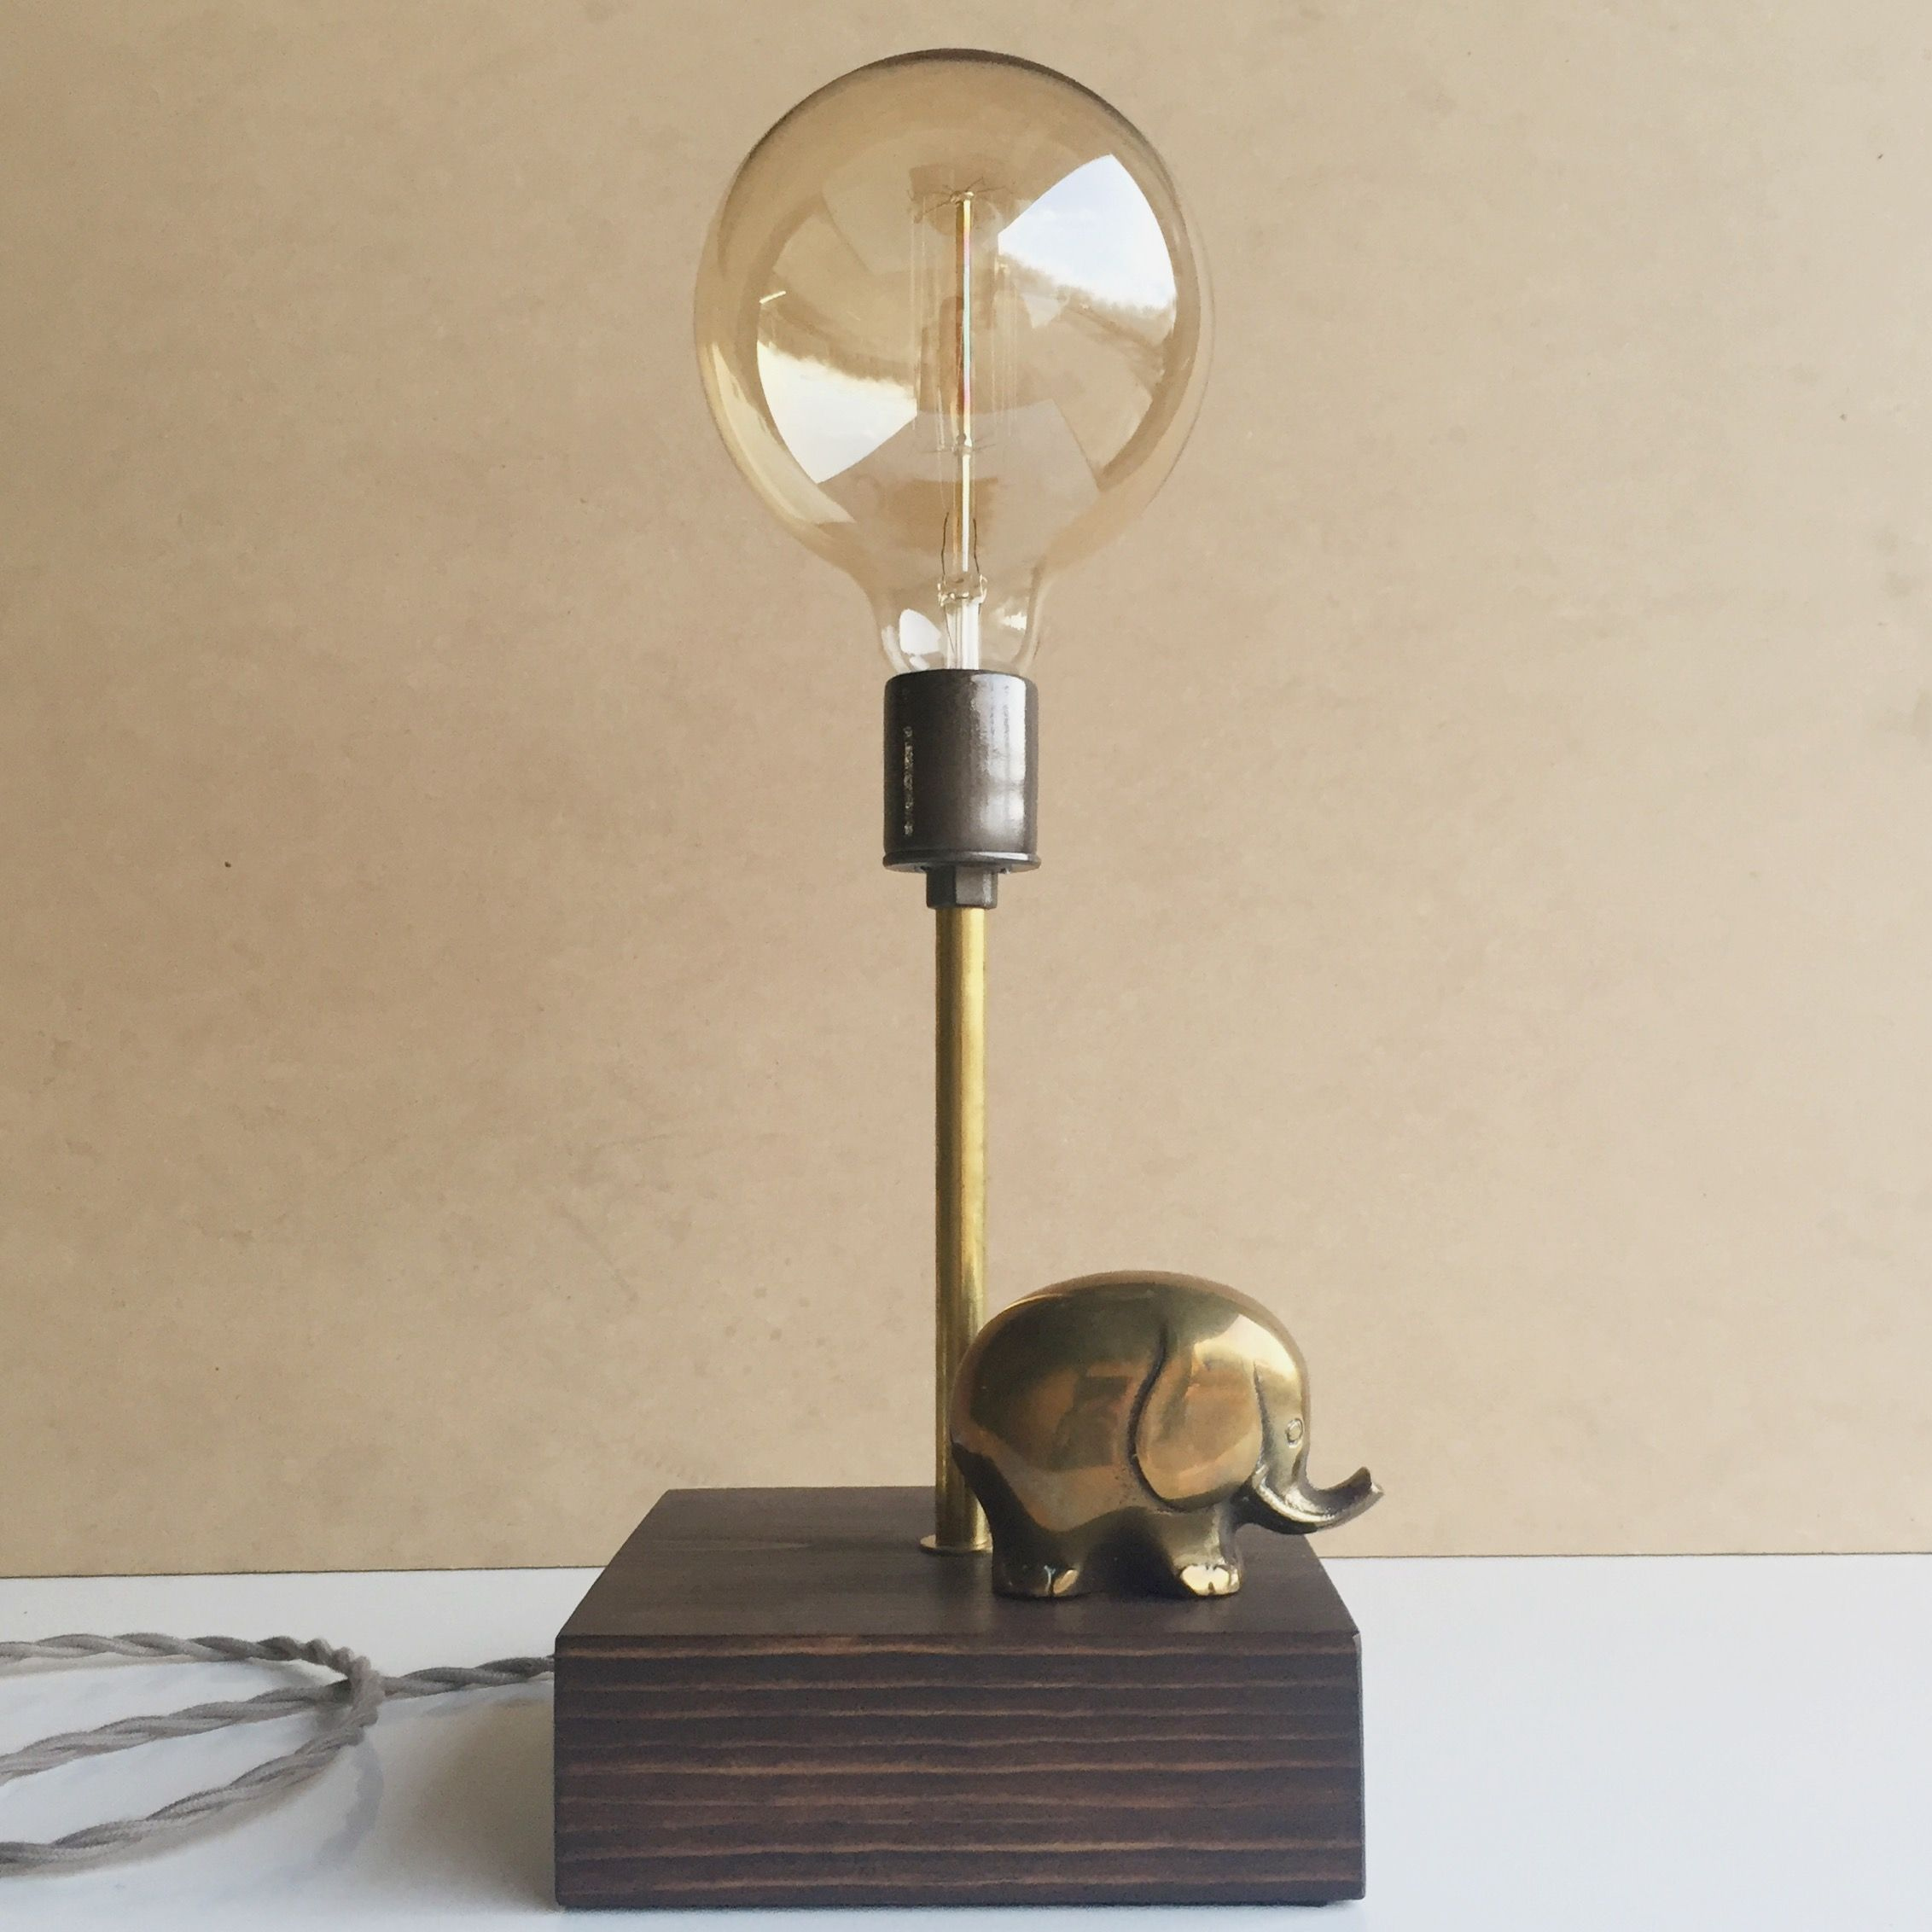 Mr Elephant Touch Sensor Lamp Lincoln Hobbs Lamp Led Bulb Filament Bulb